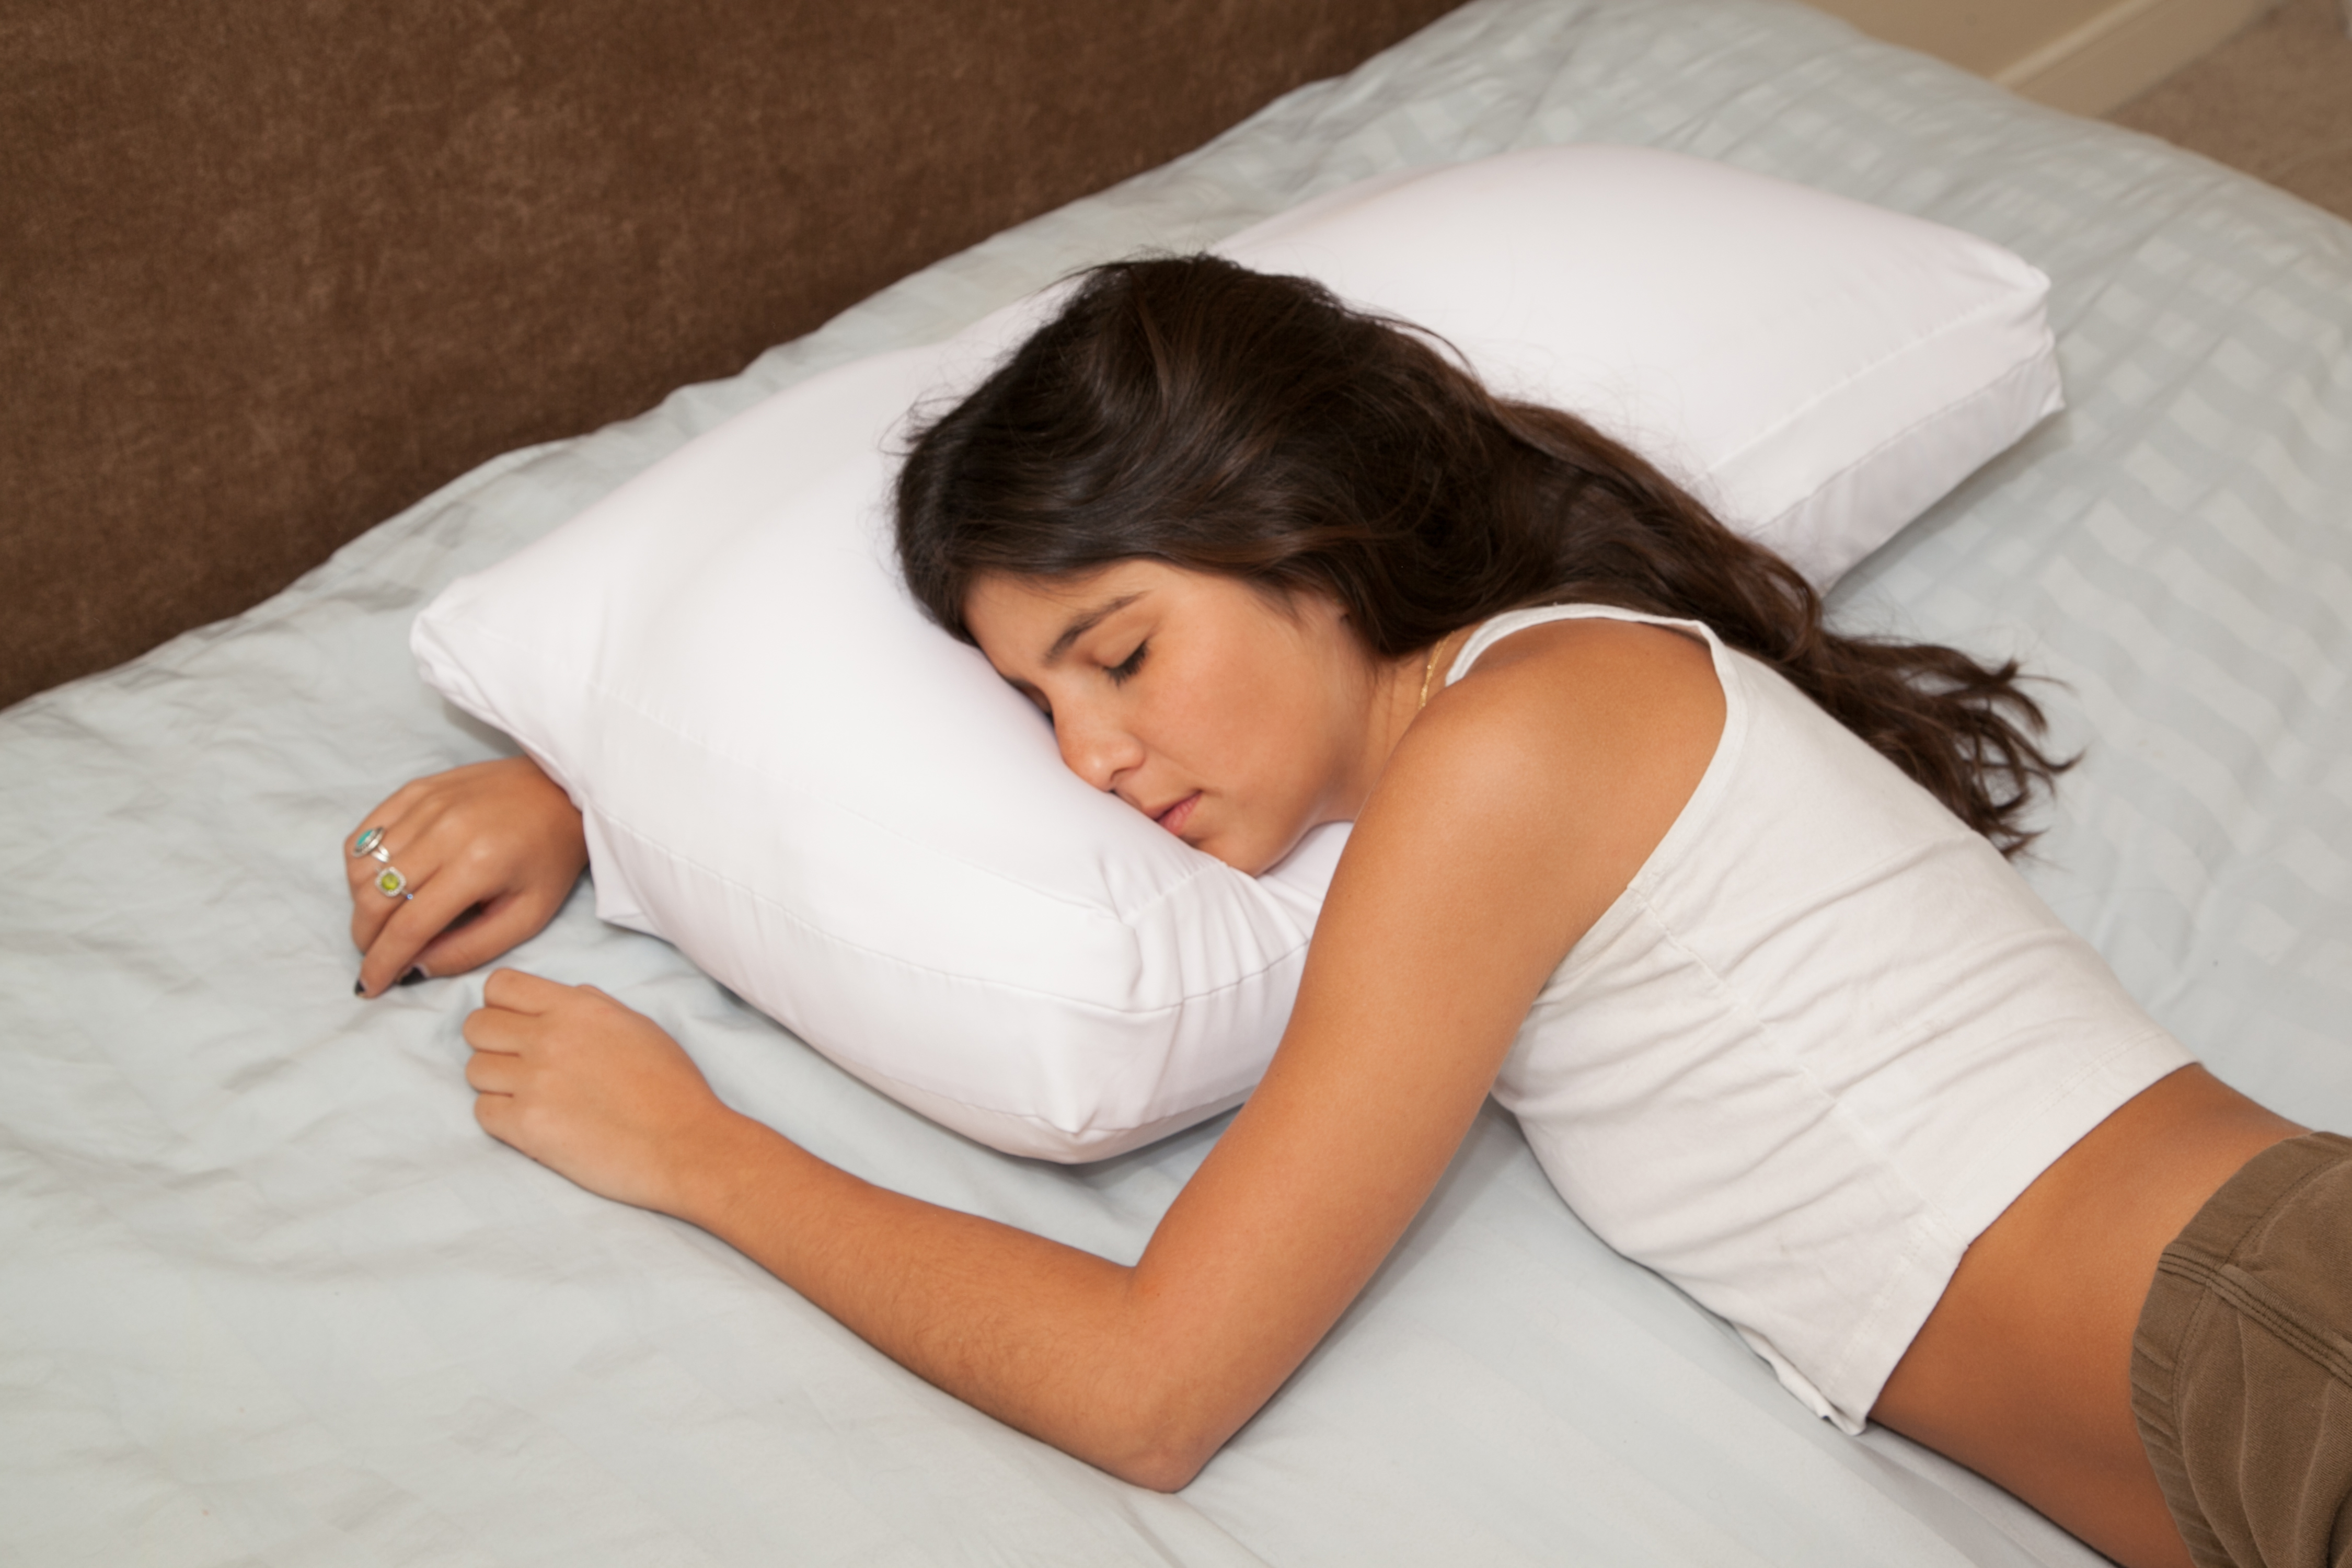 Better Sleep Cloud Microbead Pillow Improves Hand And